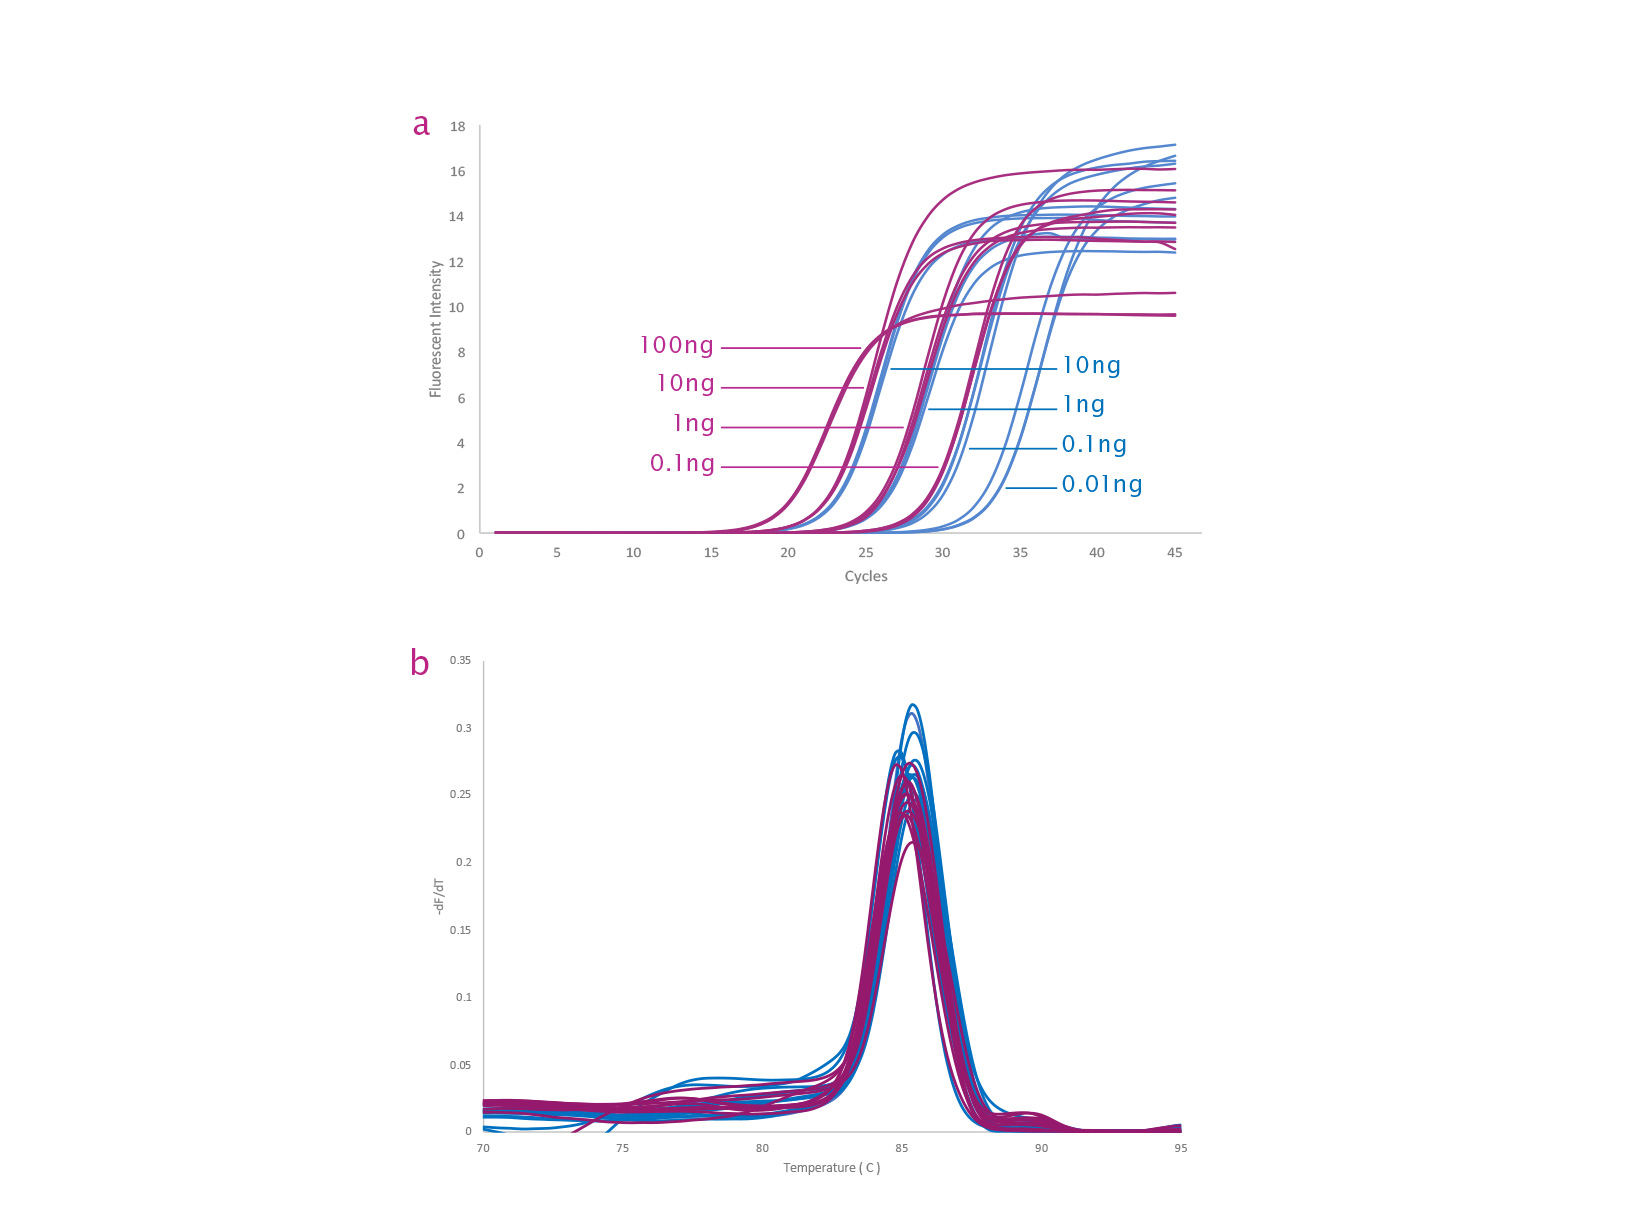 Amplification traces and melt curves comparing qPCRBIO SyGreen 1-Step Detect and qPCRBIO SyGreen 1-Step Go.